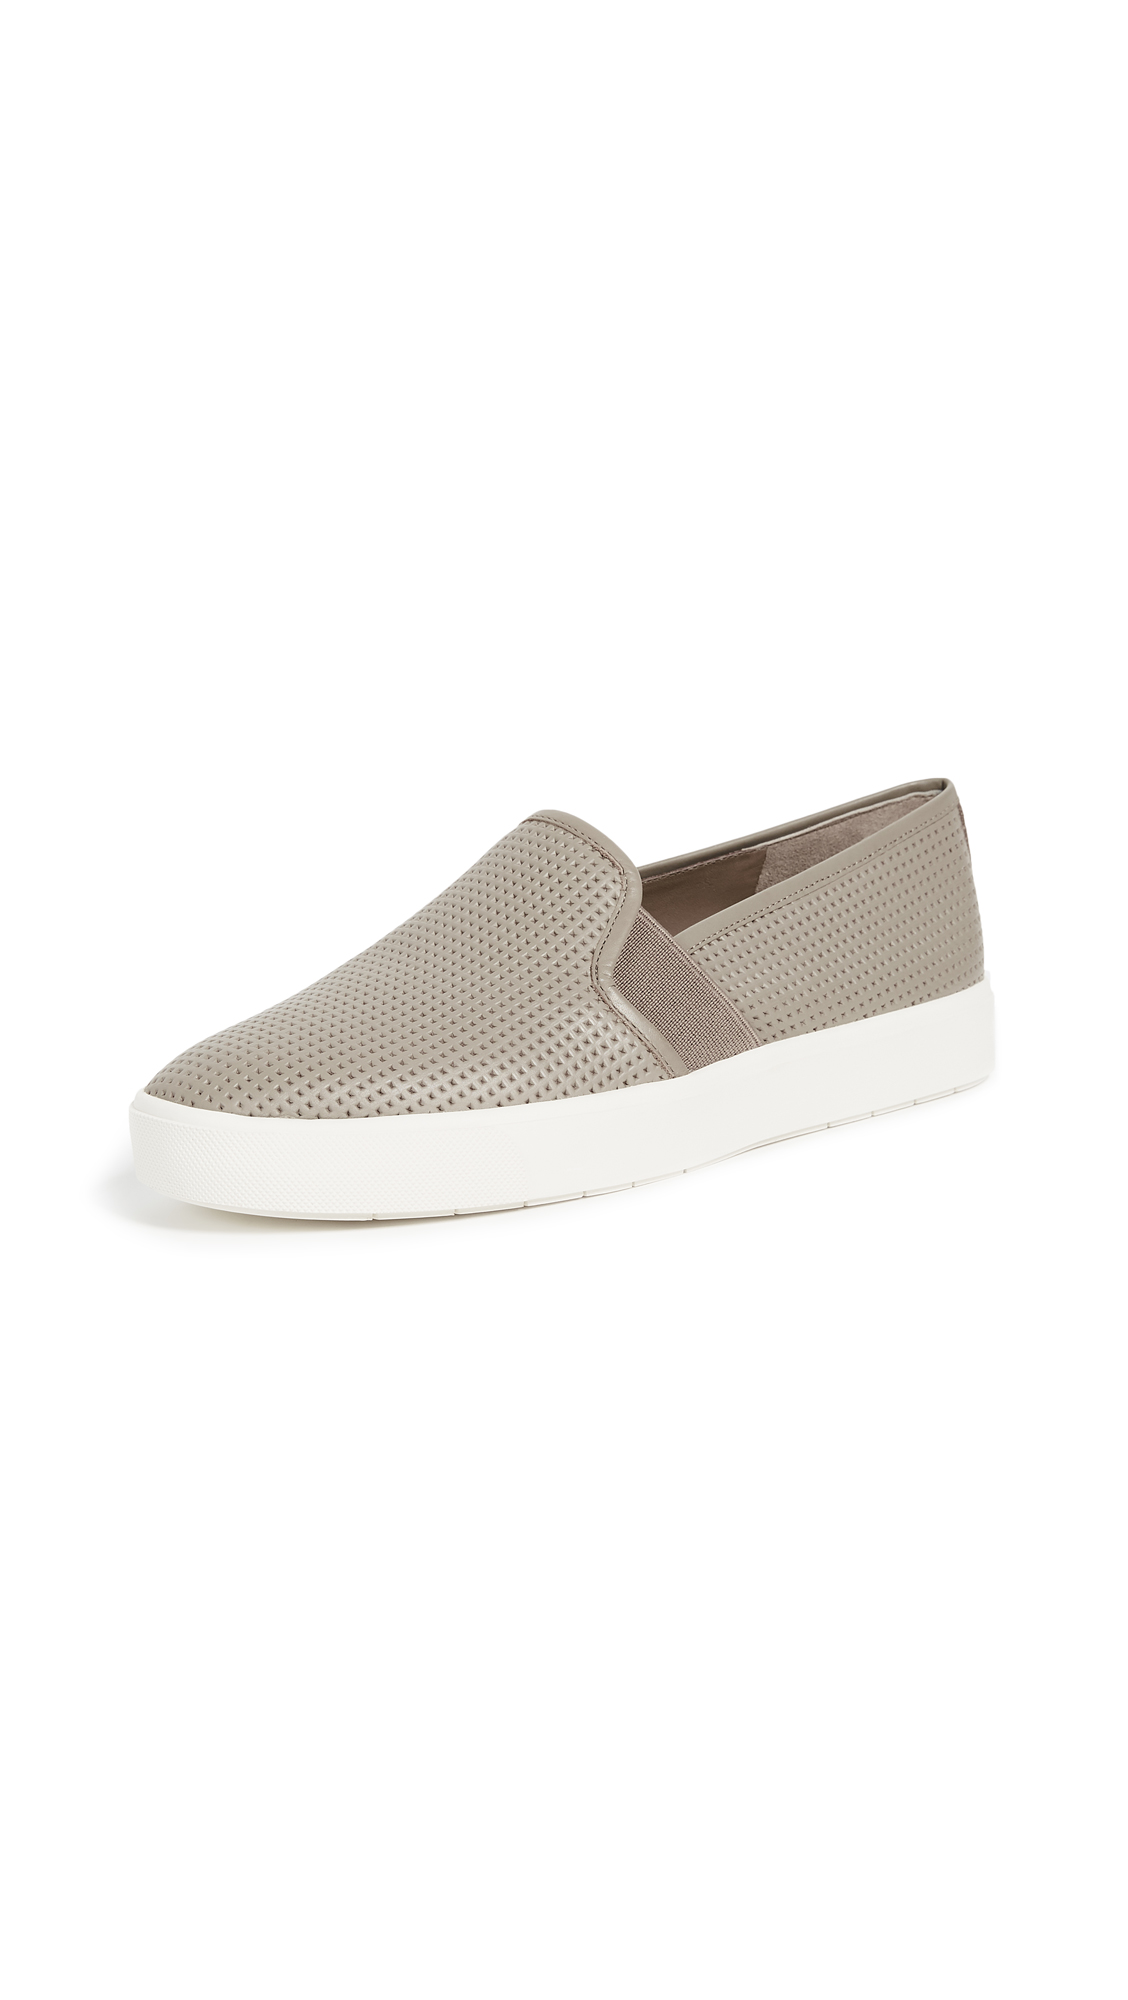 Vince Blair Slip On Sneakers - Woodsmoke